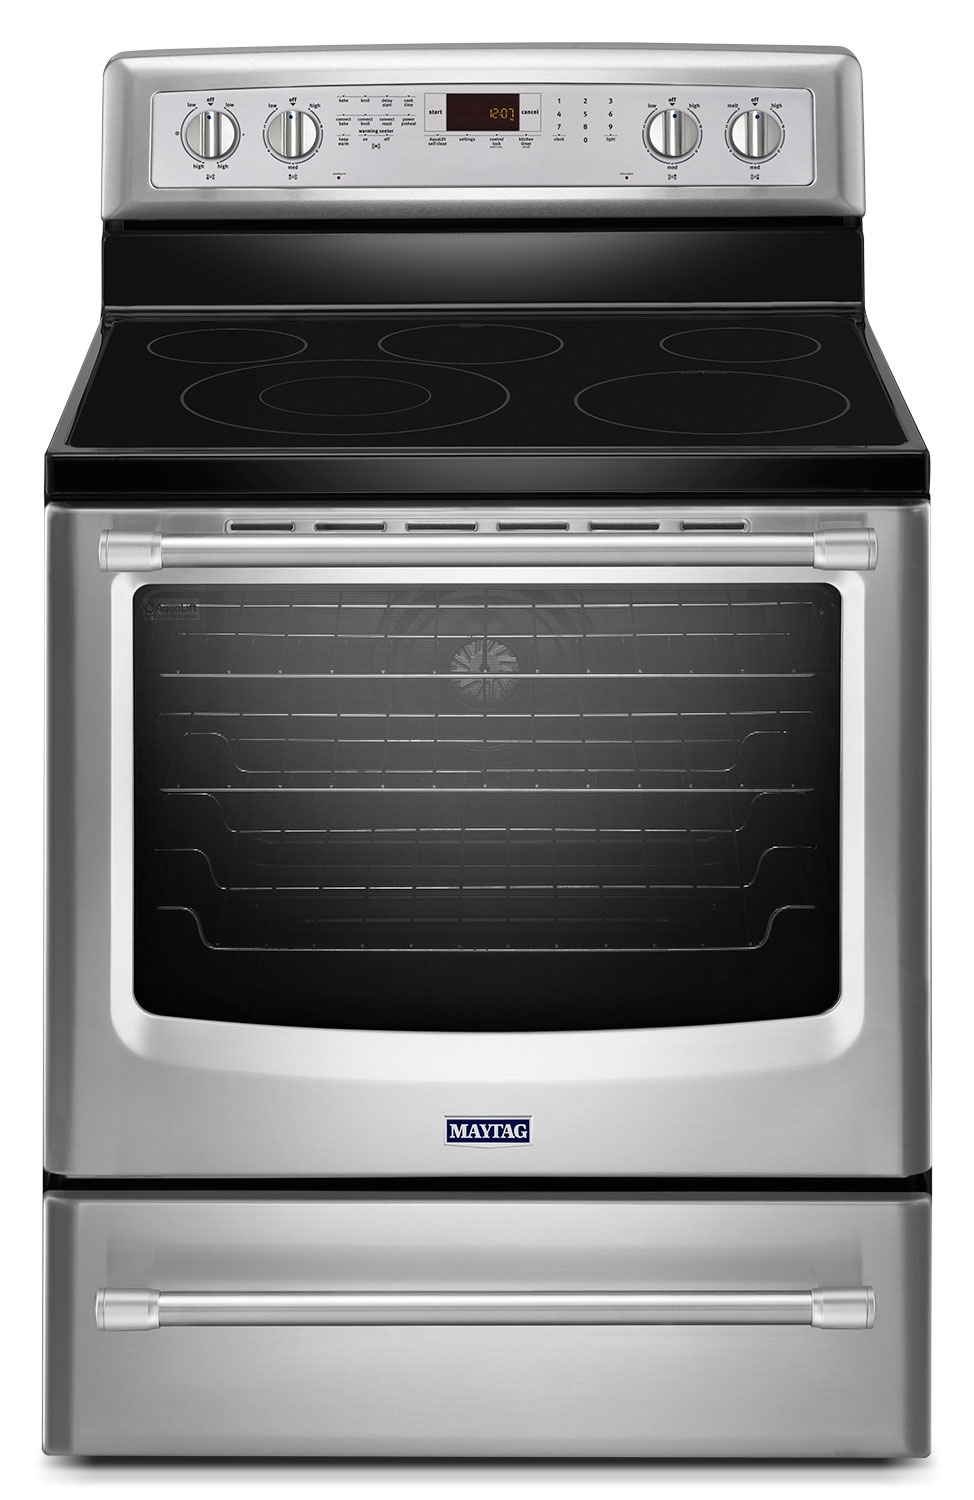 Cooking Products - Maytag Stainless Steel Freestanding Electric Convection Range (6.2 Cu. Ft.) - YMER8800DS